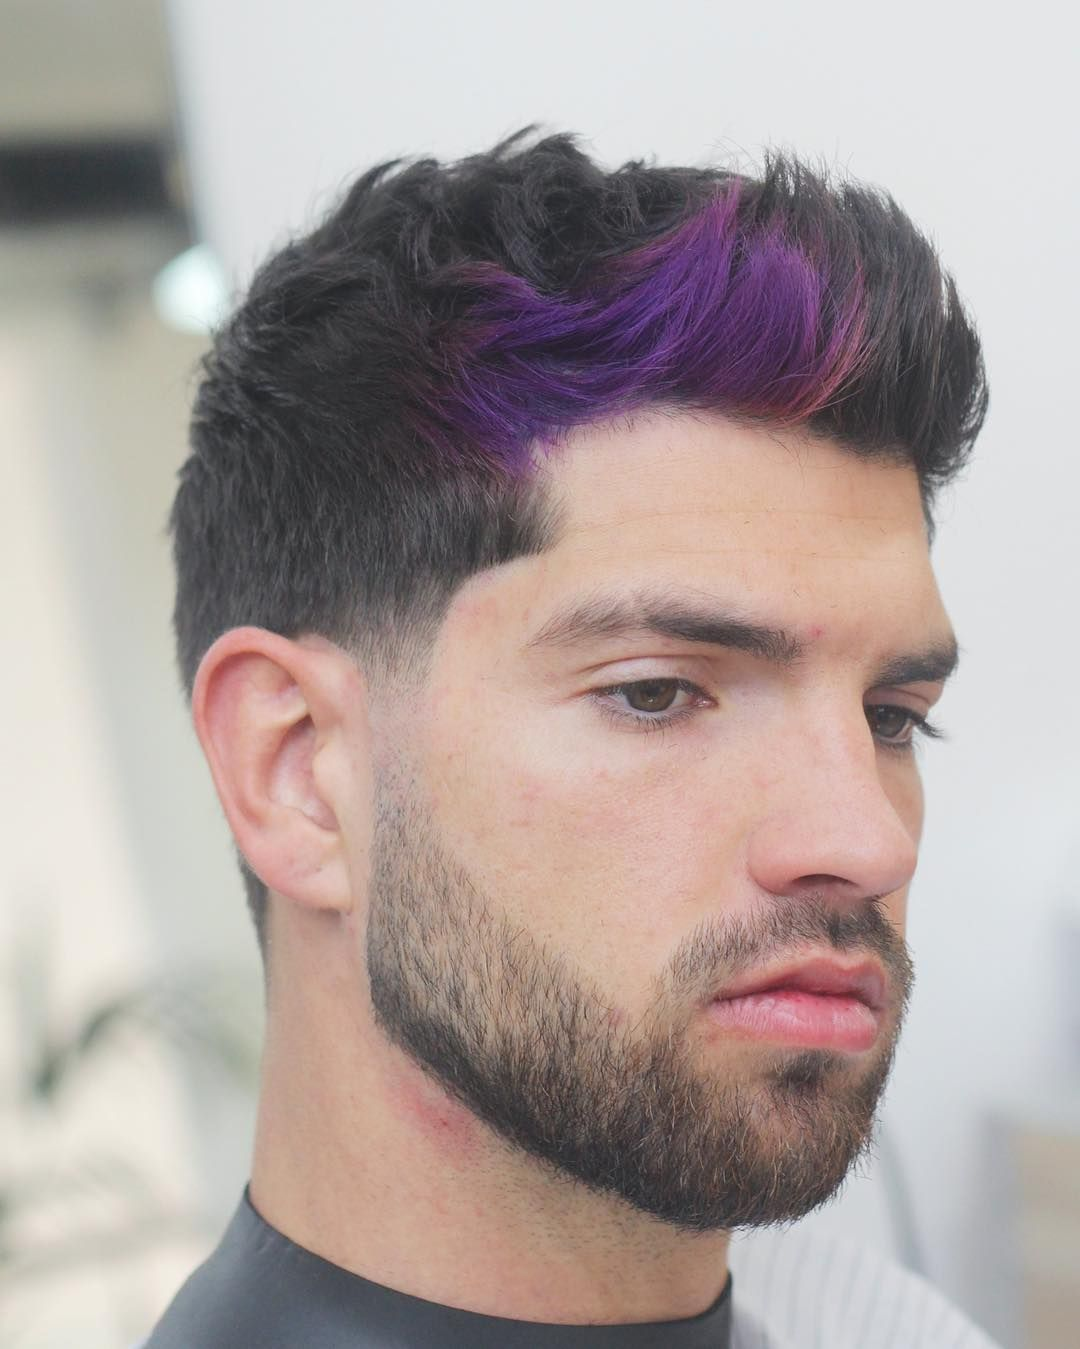 Best mens haircuts for round faces awesome  topnotch comb over taper haircuts  the immortal trend